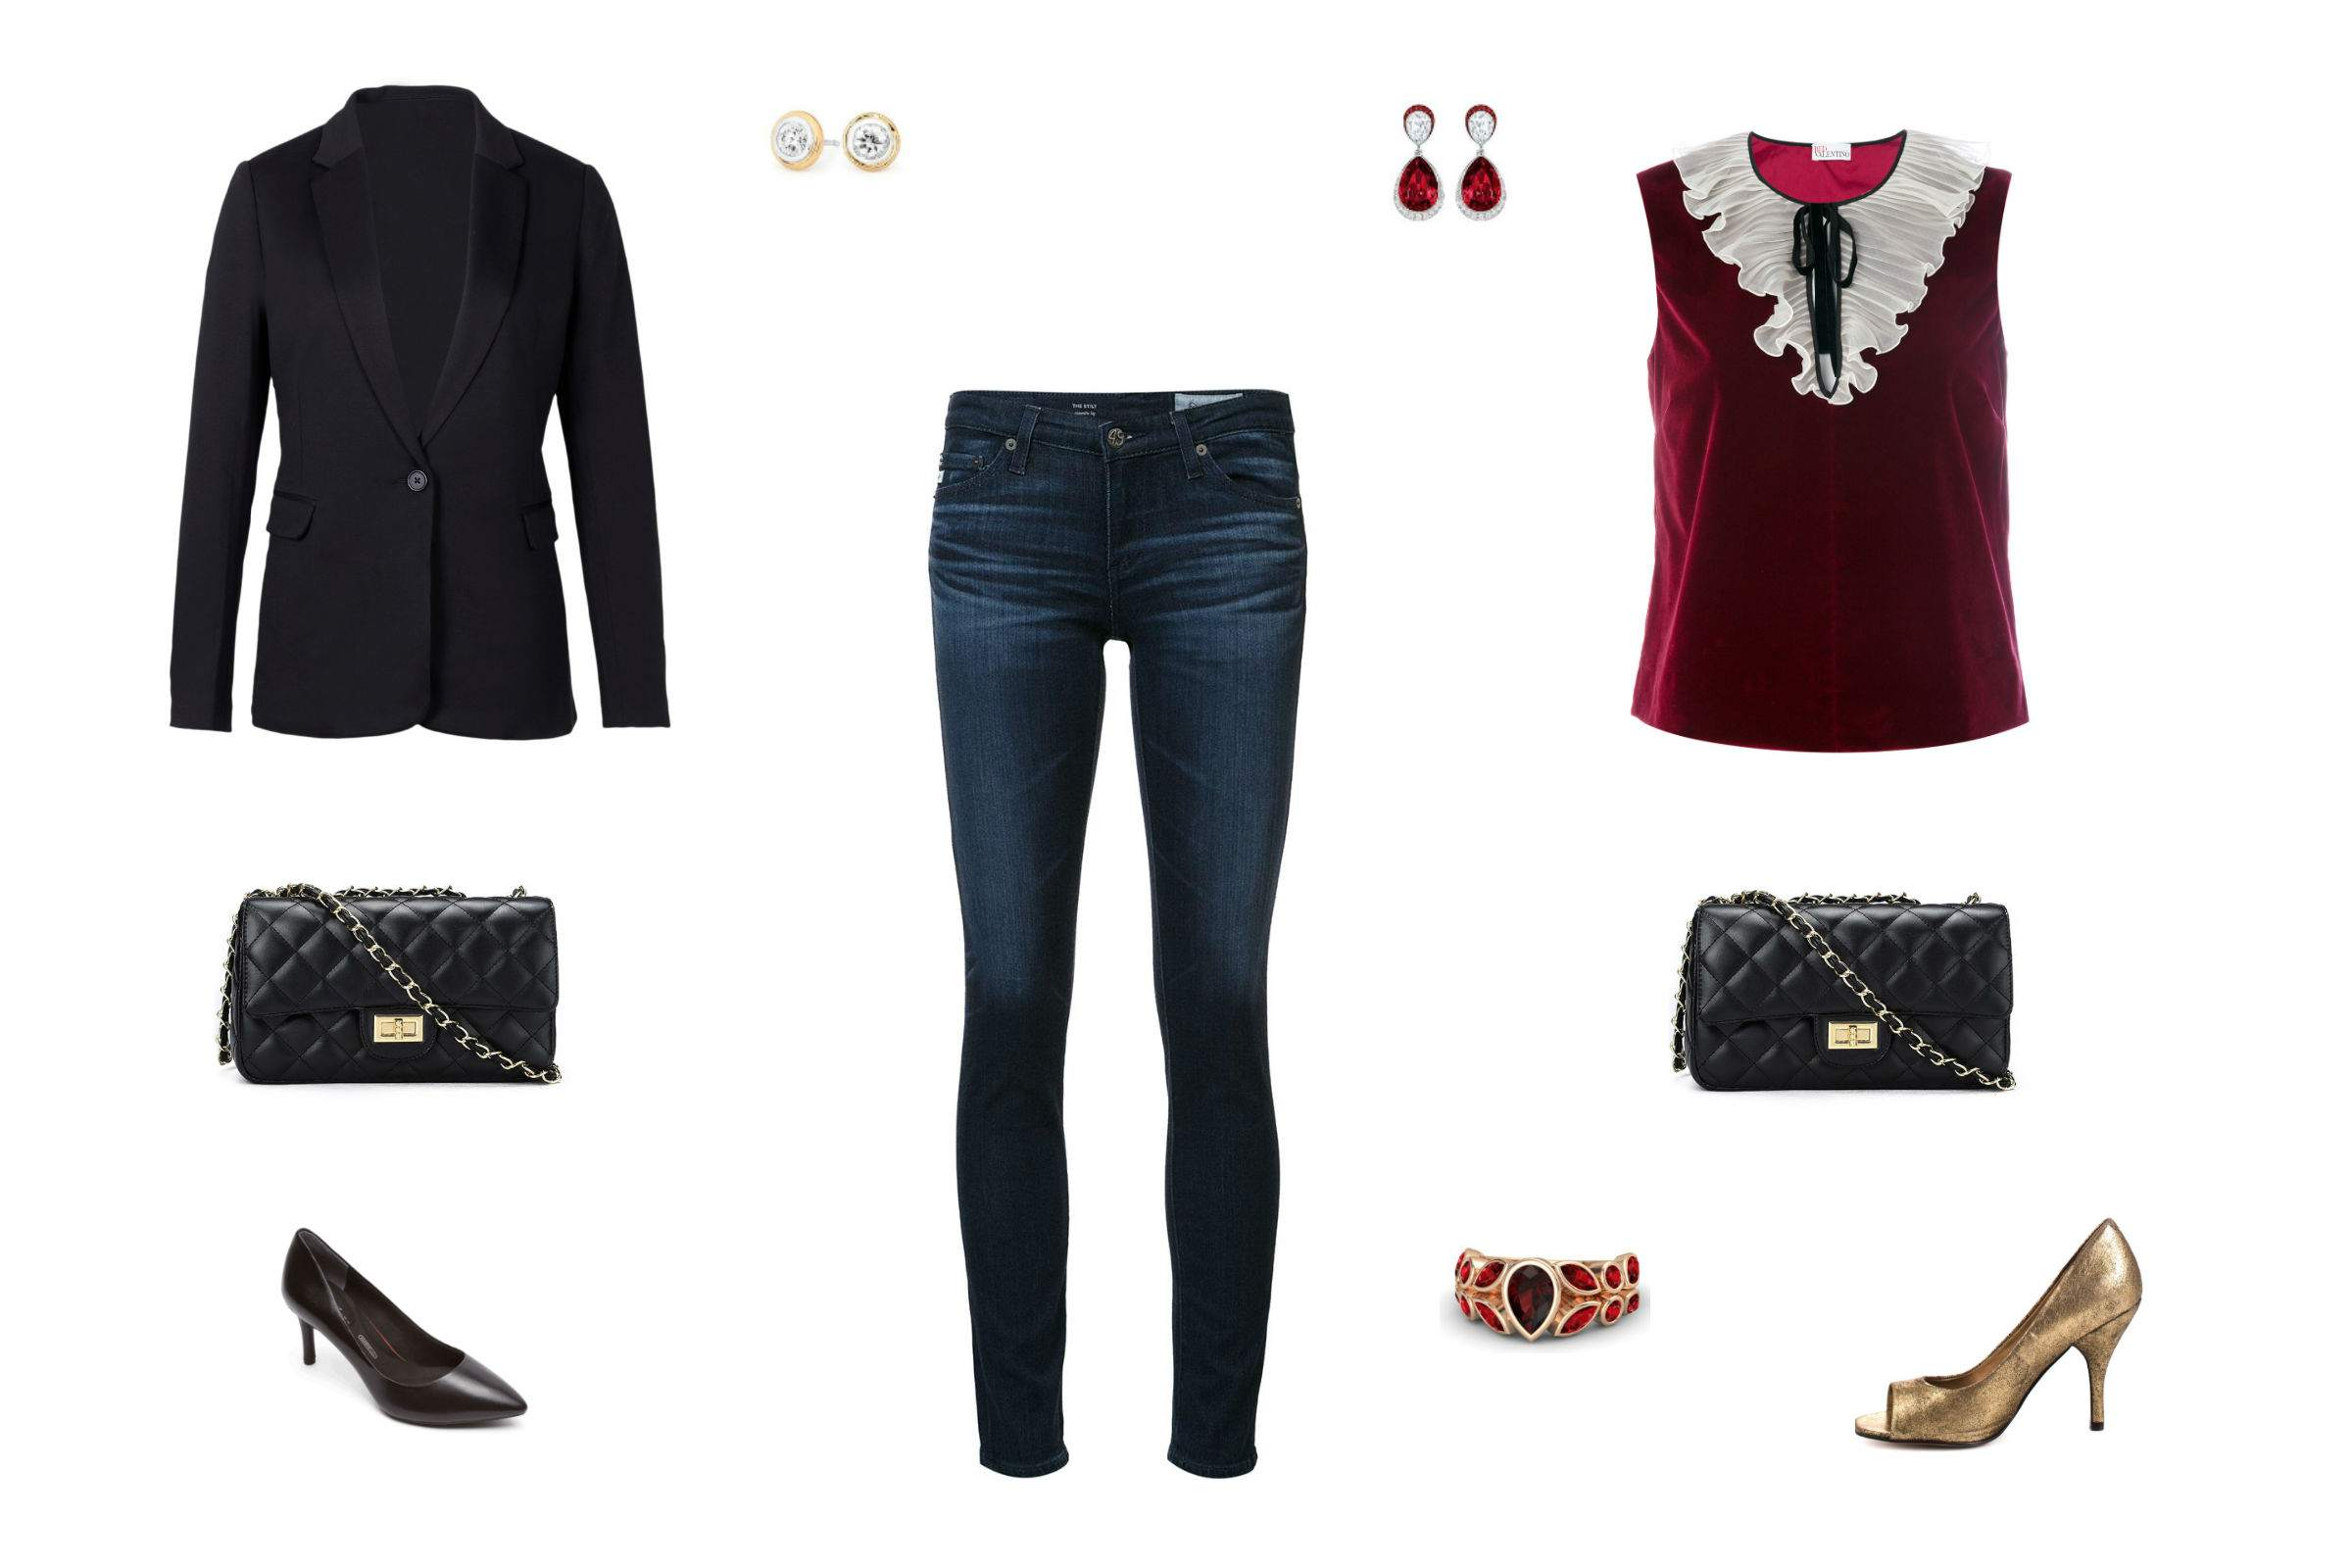 63311b0fff2 10 Ways to Dress Up Jeans for a Night Out